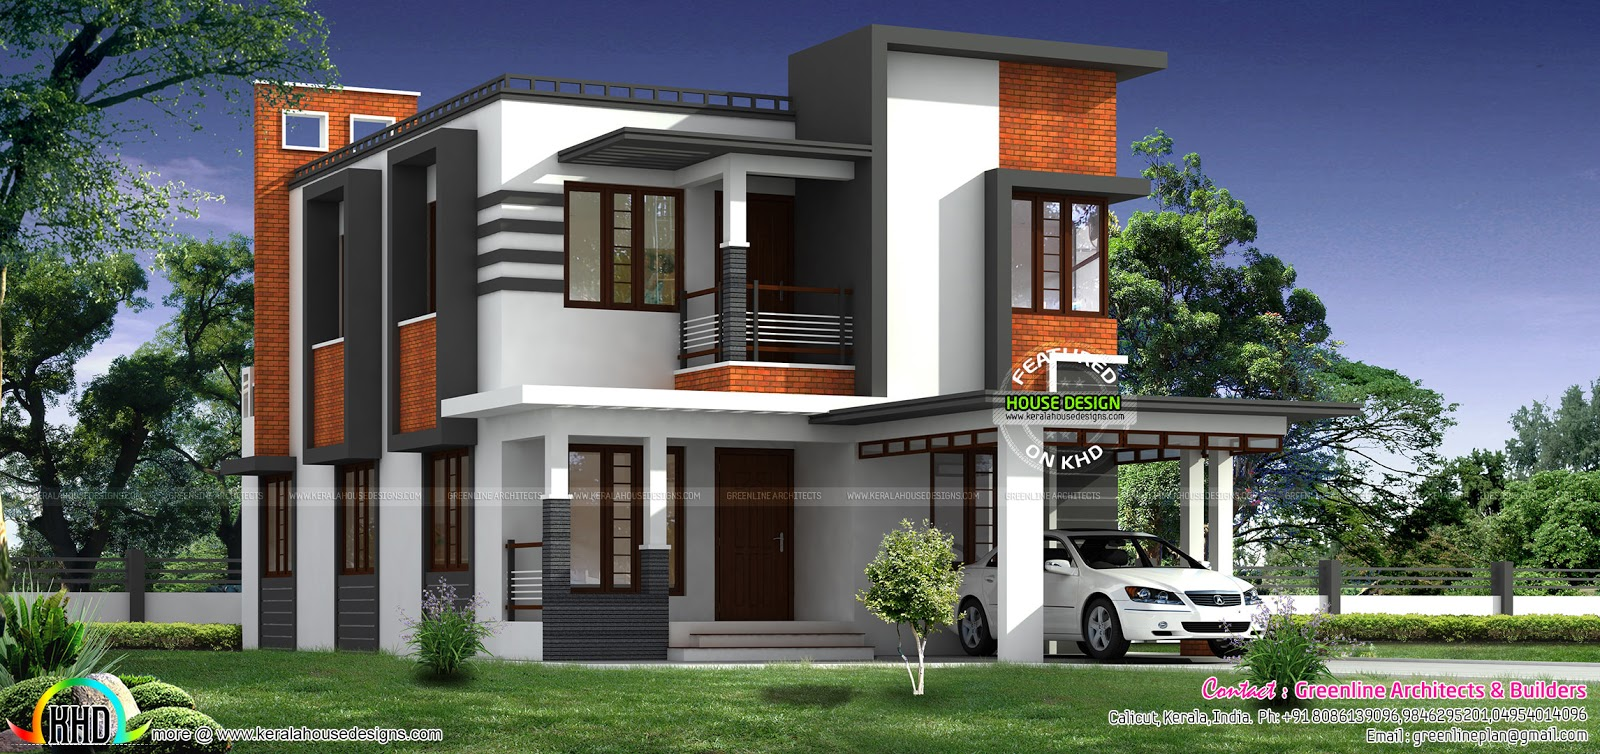 1800 sq ft nice modern house kerala home design and floor plans - Nice home designs ...